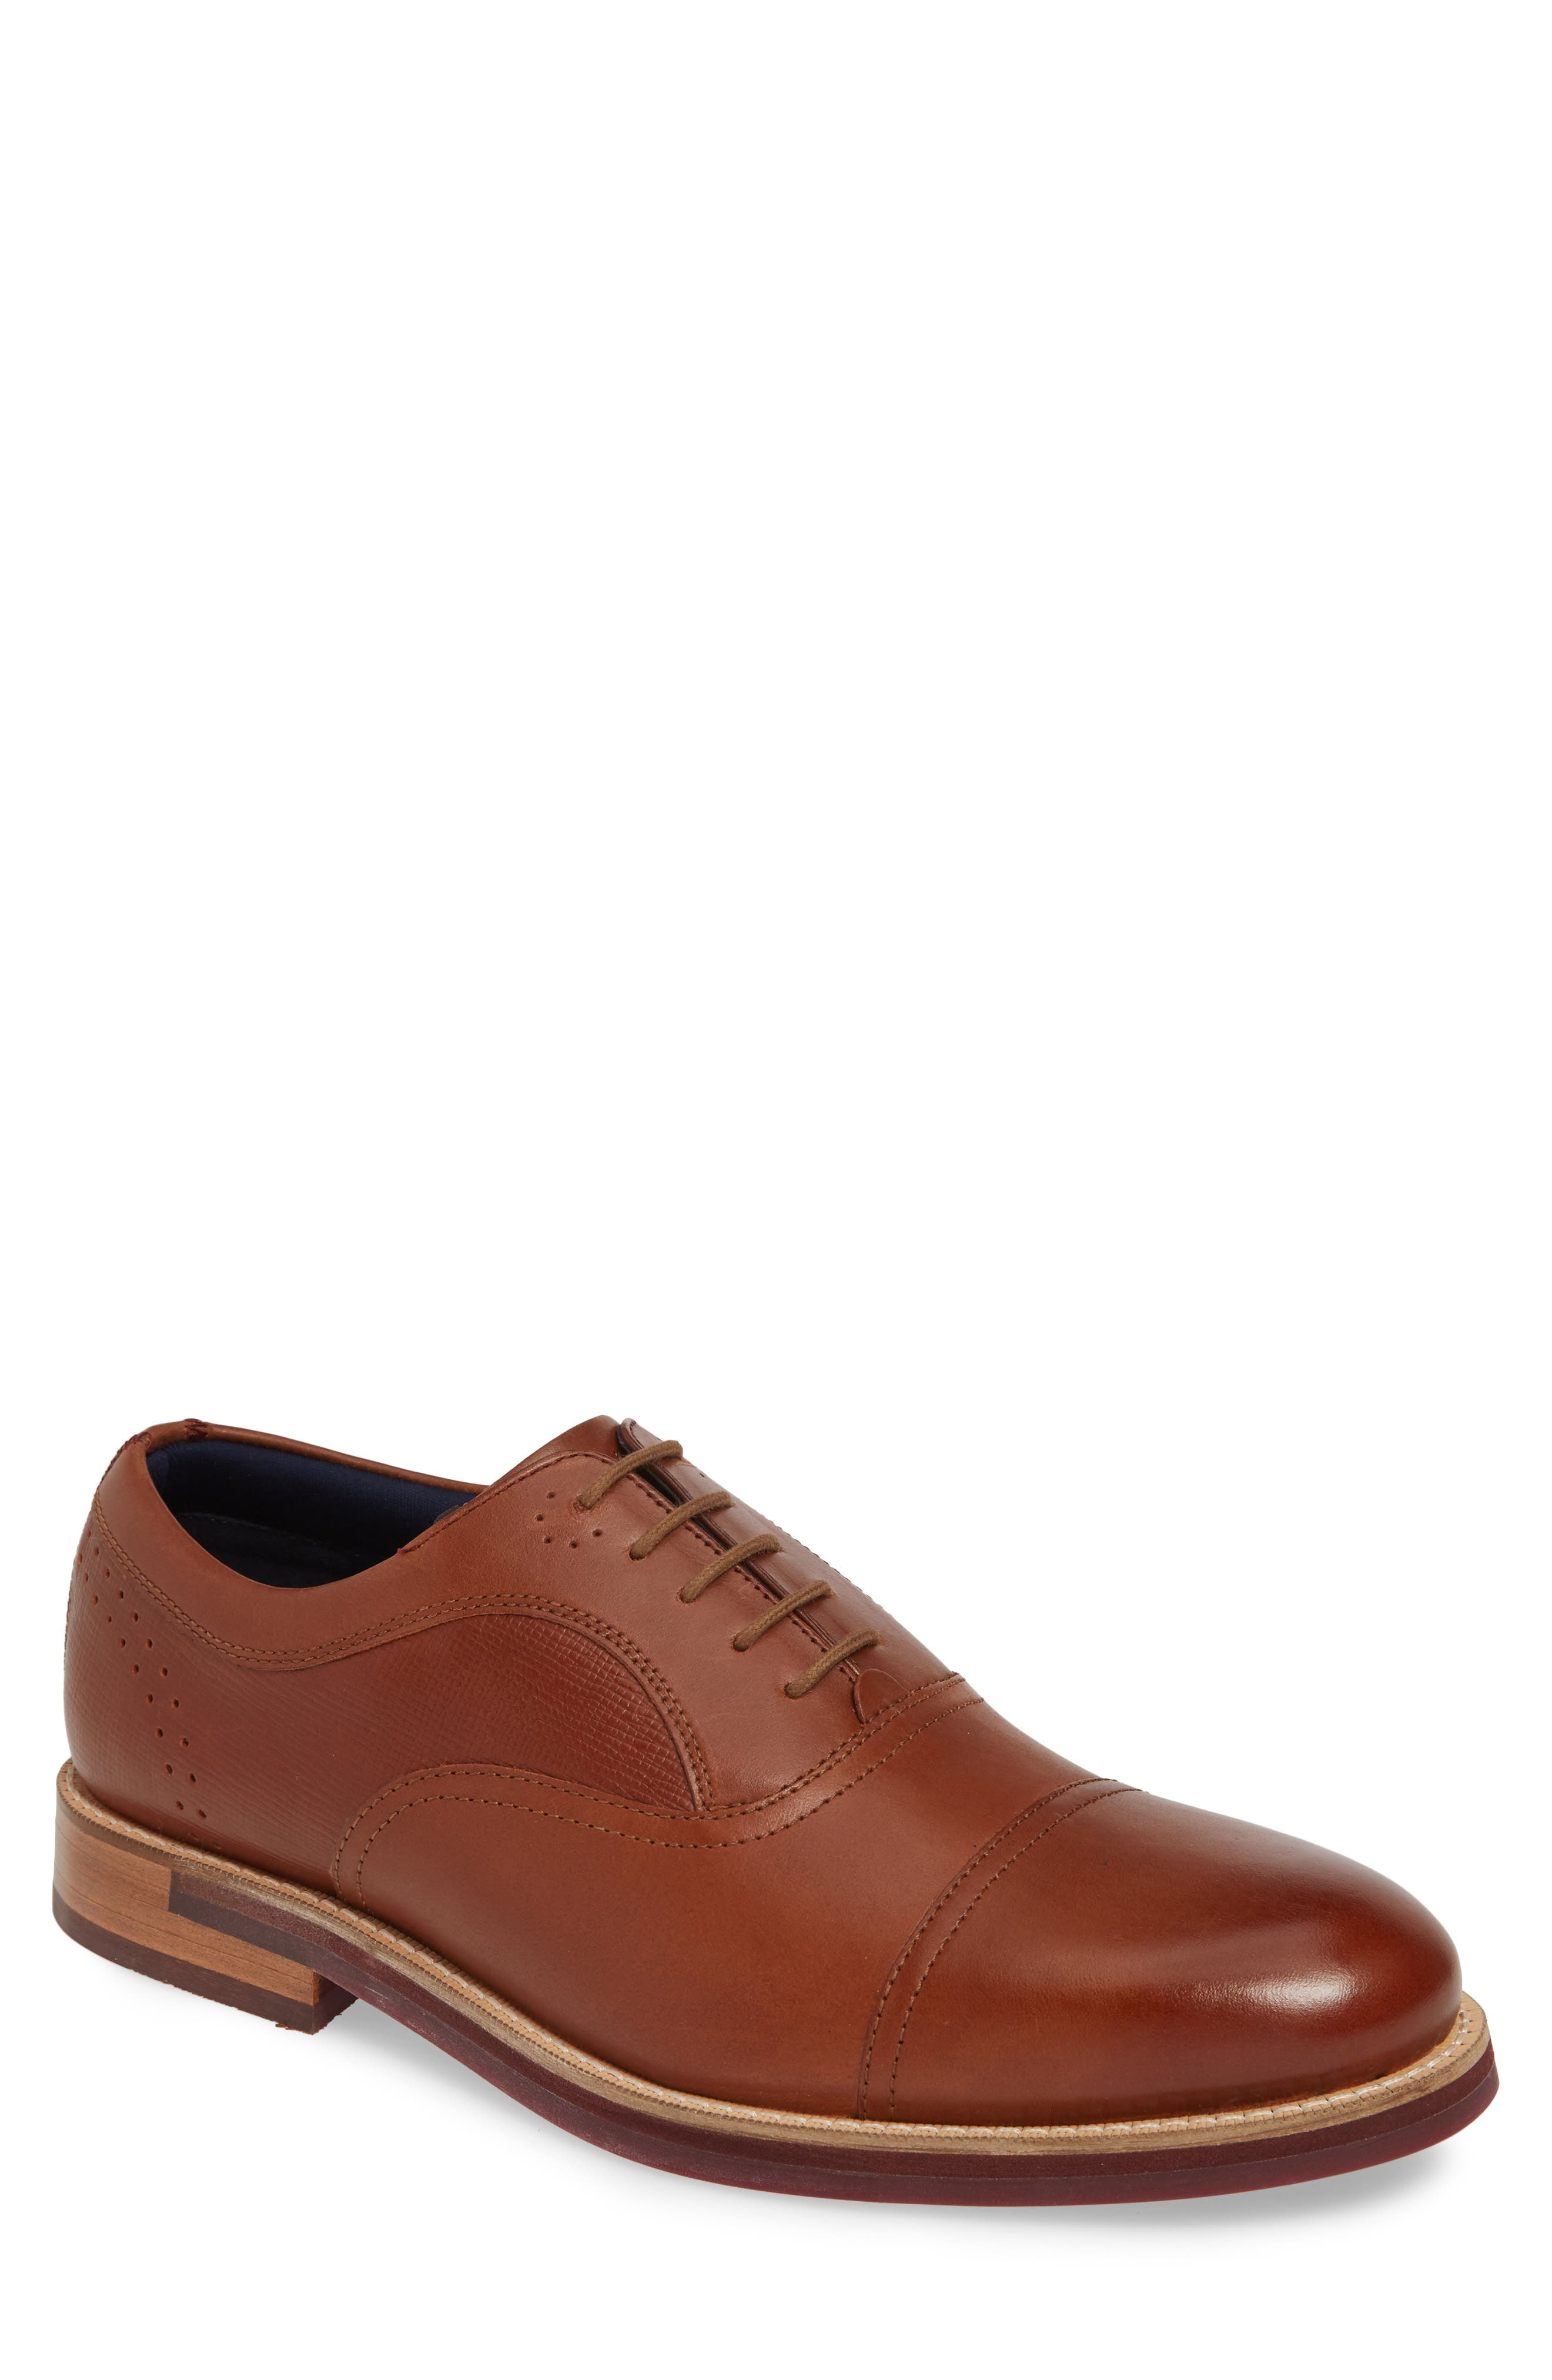 Ted Baker London Quidion Cap Toe Oxford, Brown